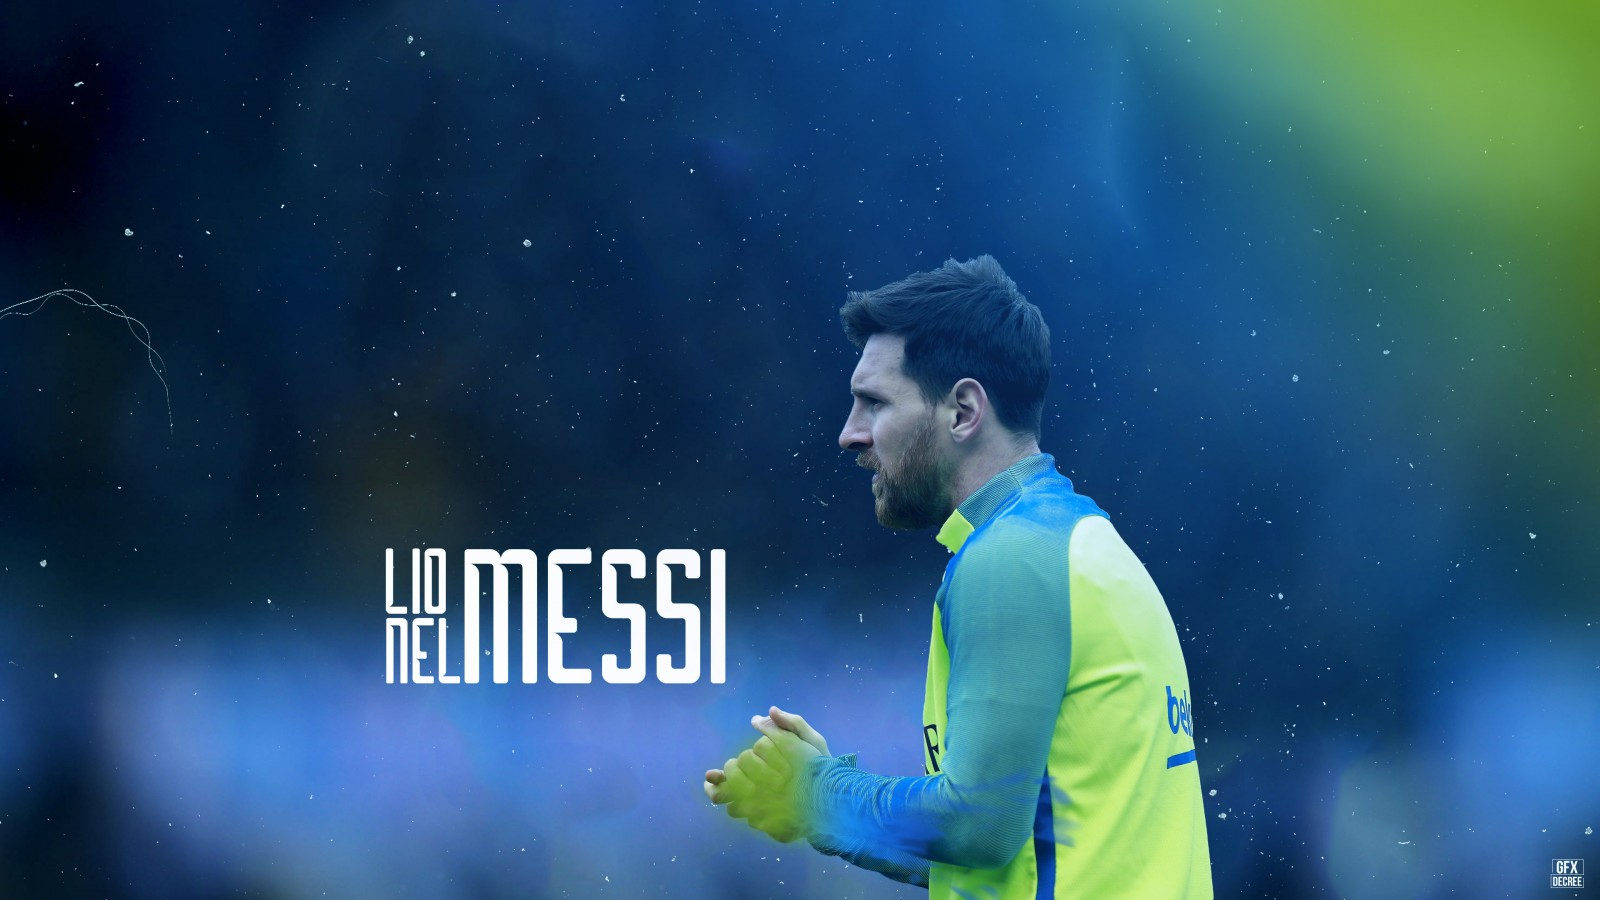 3d Wallpapers Messi Lionel Messi 4k Hd Wallpapers Hd Wallpapers Id 21877